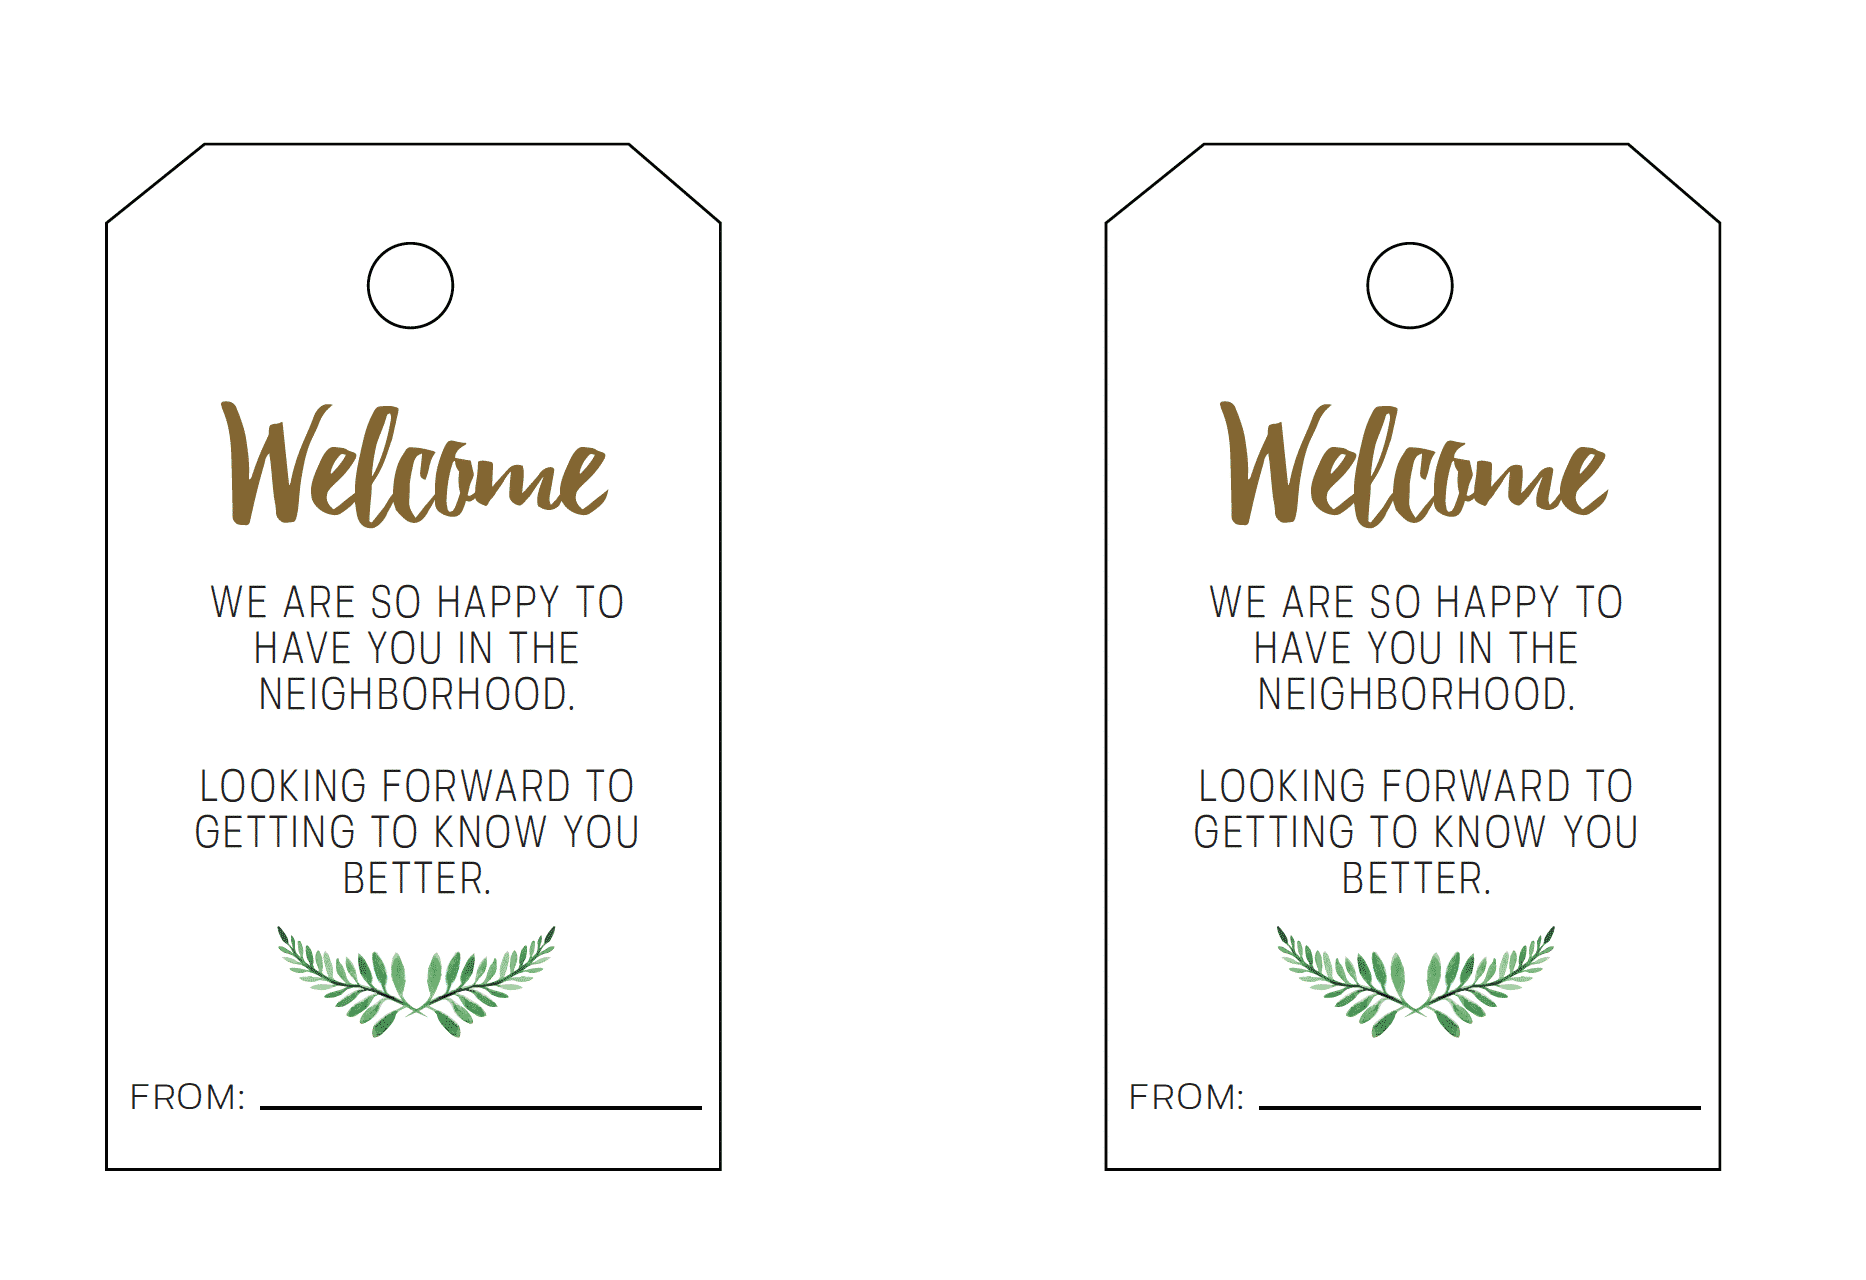 graphic relating to Welcome to the Neighborhood Printable identified as Clean Neighbor Reward Tag Printable - Welcome In direction of The